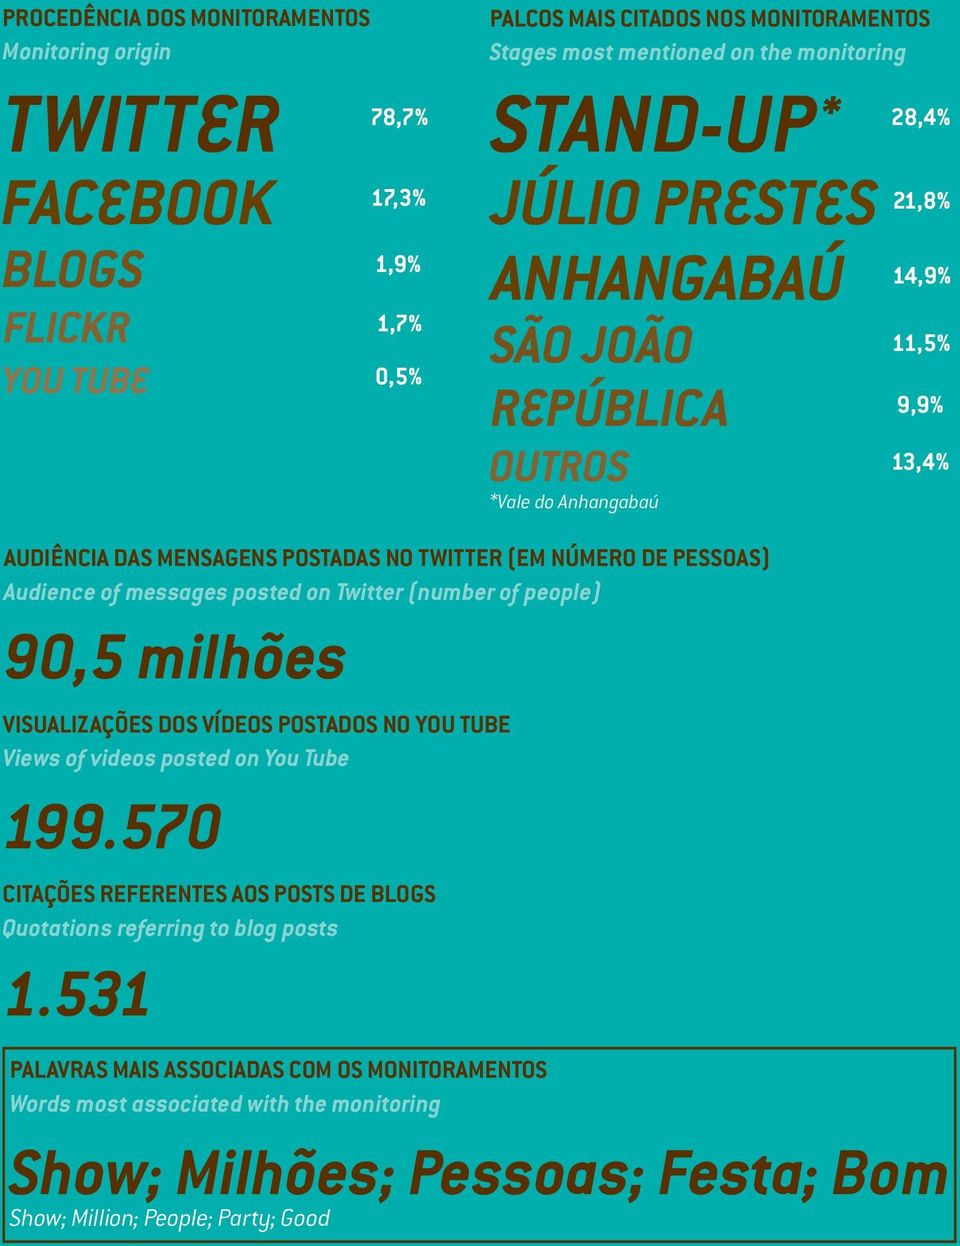 of messages posted on Twitter (number of people) 90,5 milhões VISUALIZAÇÕES DOS VÍDEOS POSTADOS NO YOU TUBE Views of videos posted on You Tube 199.